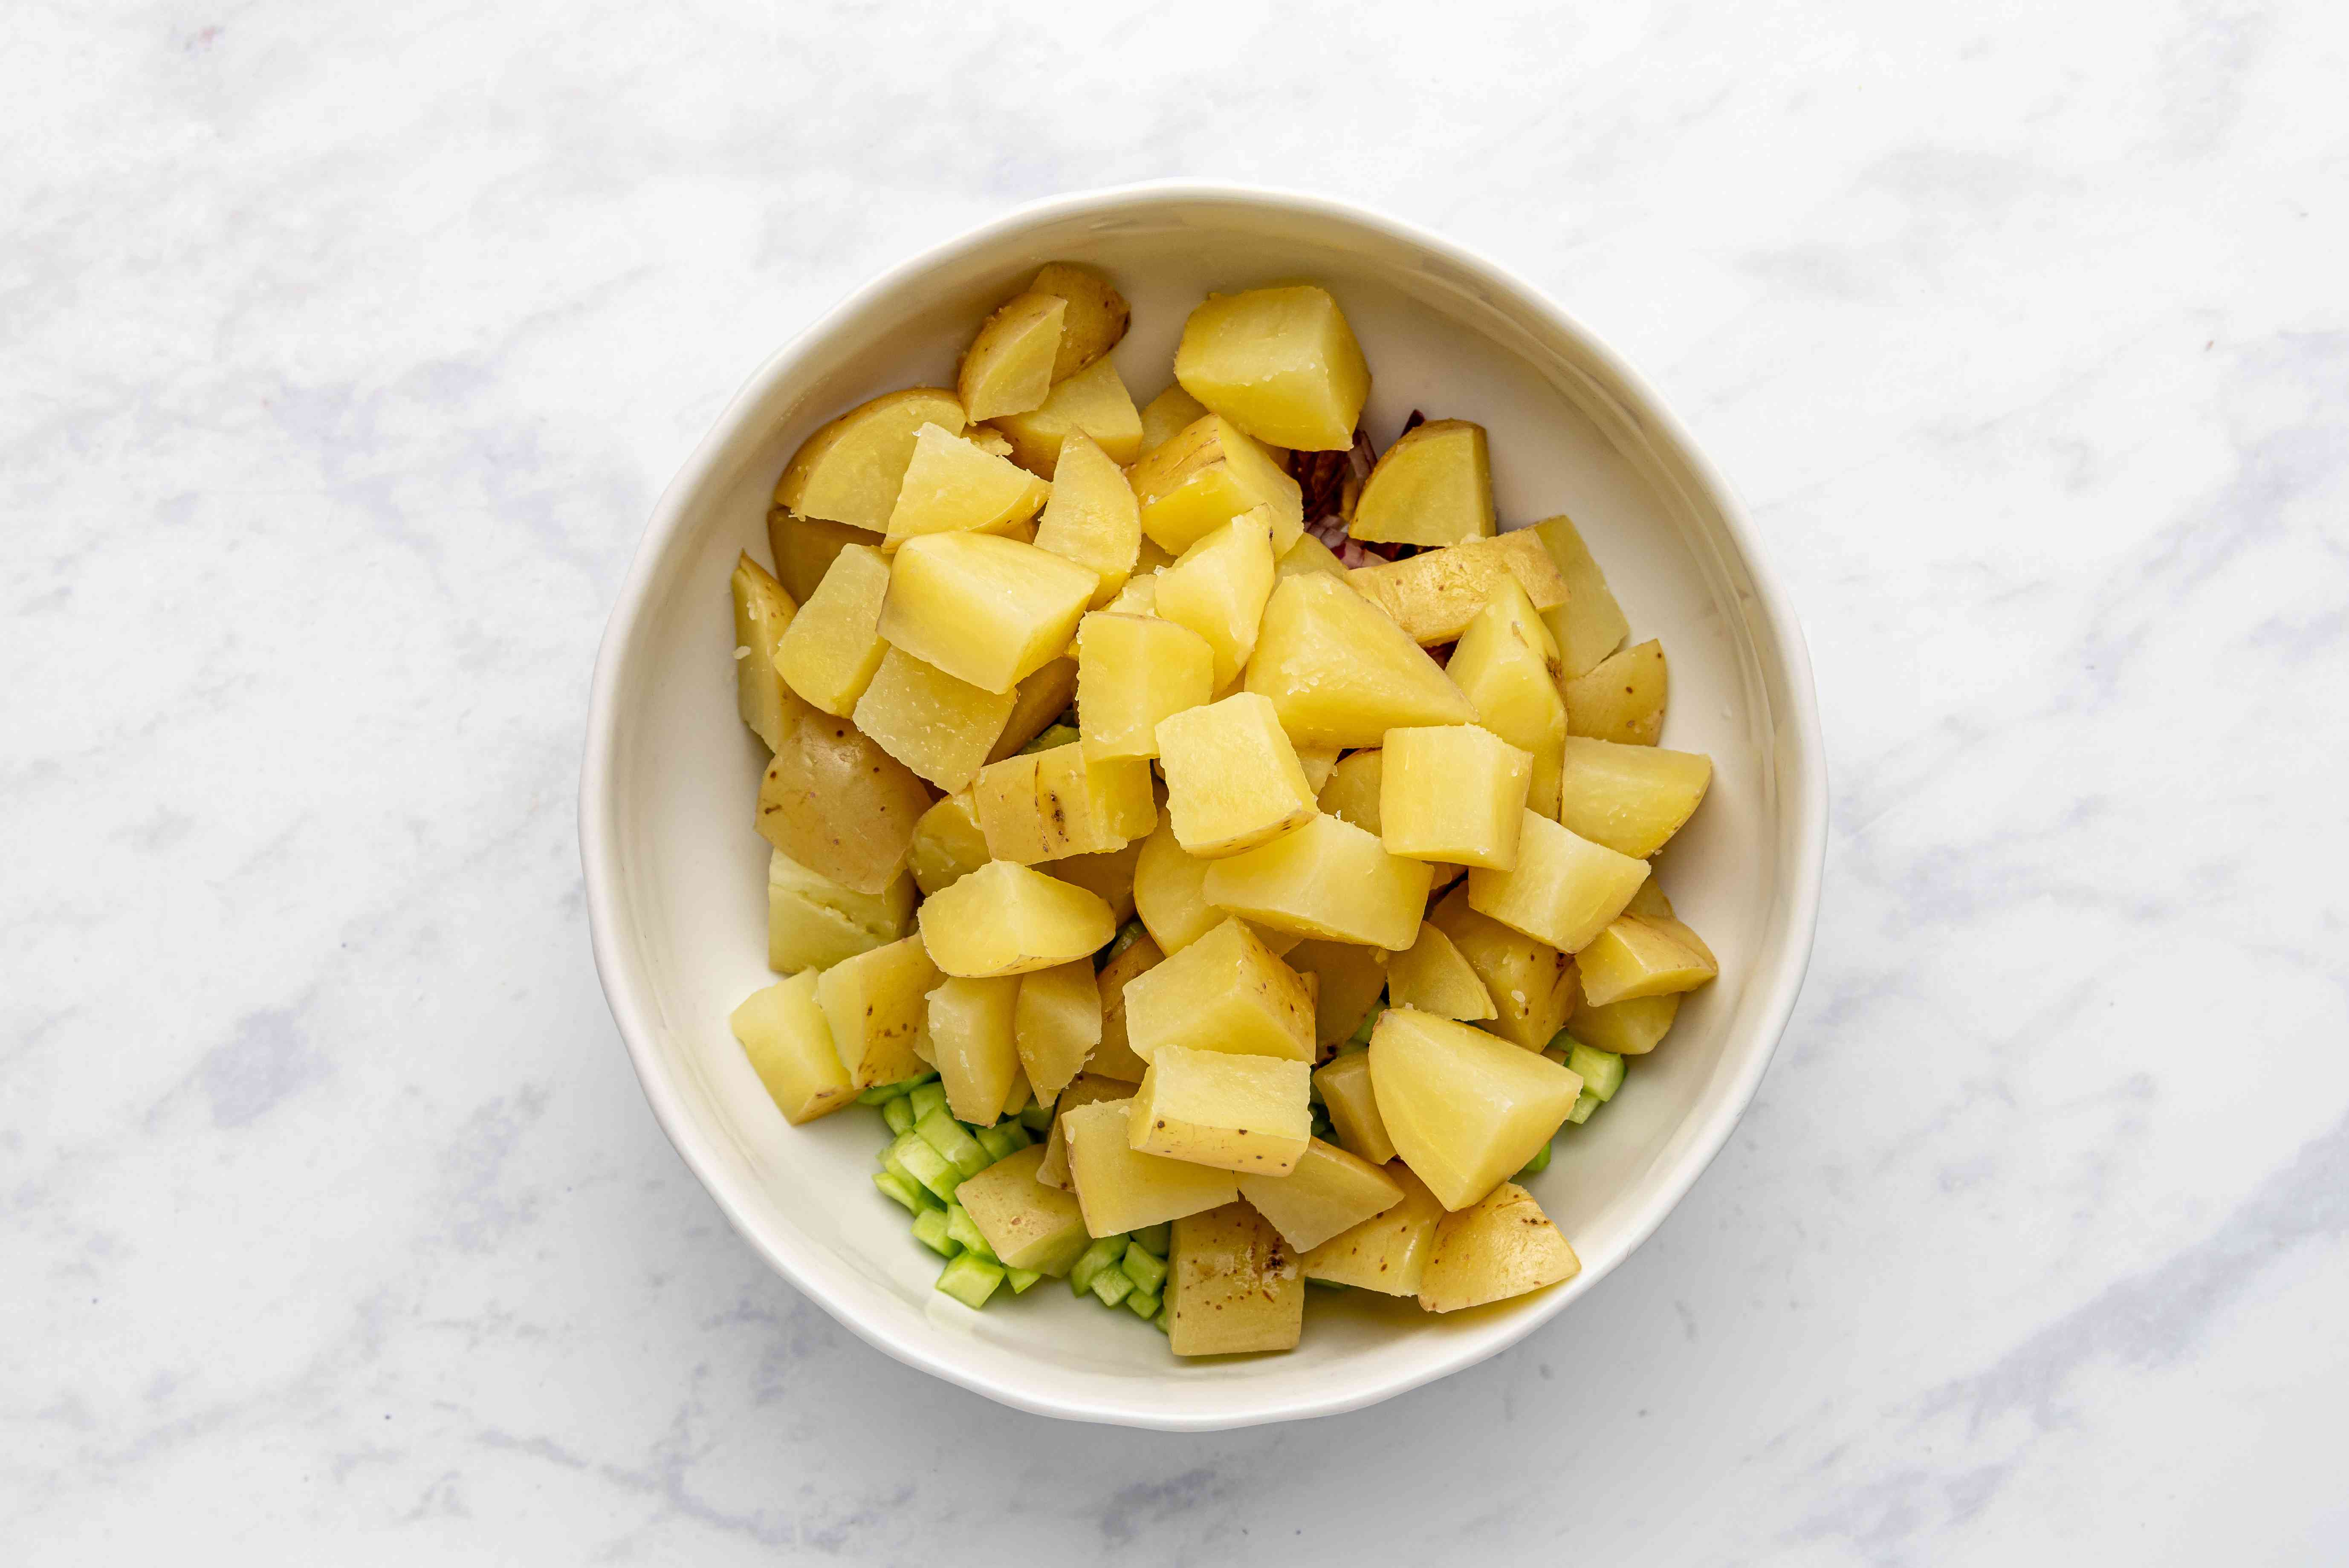 add potatoes to the mixture in the bowl